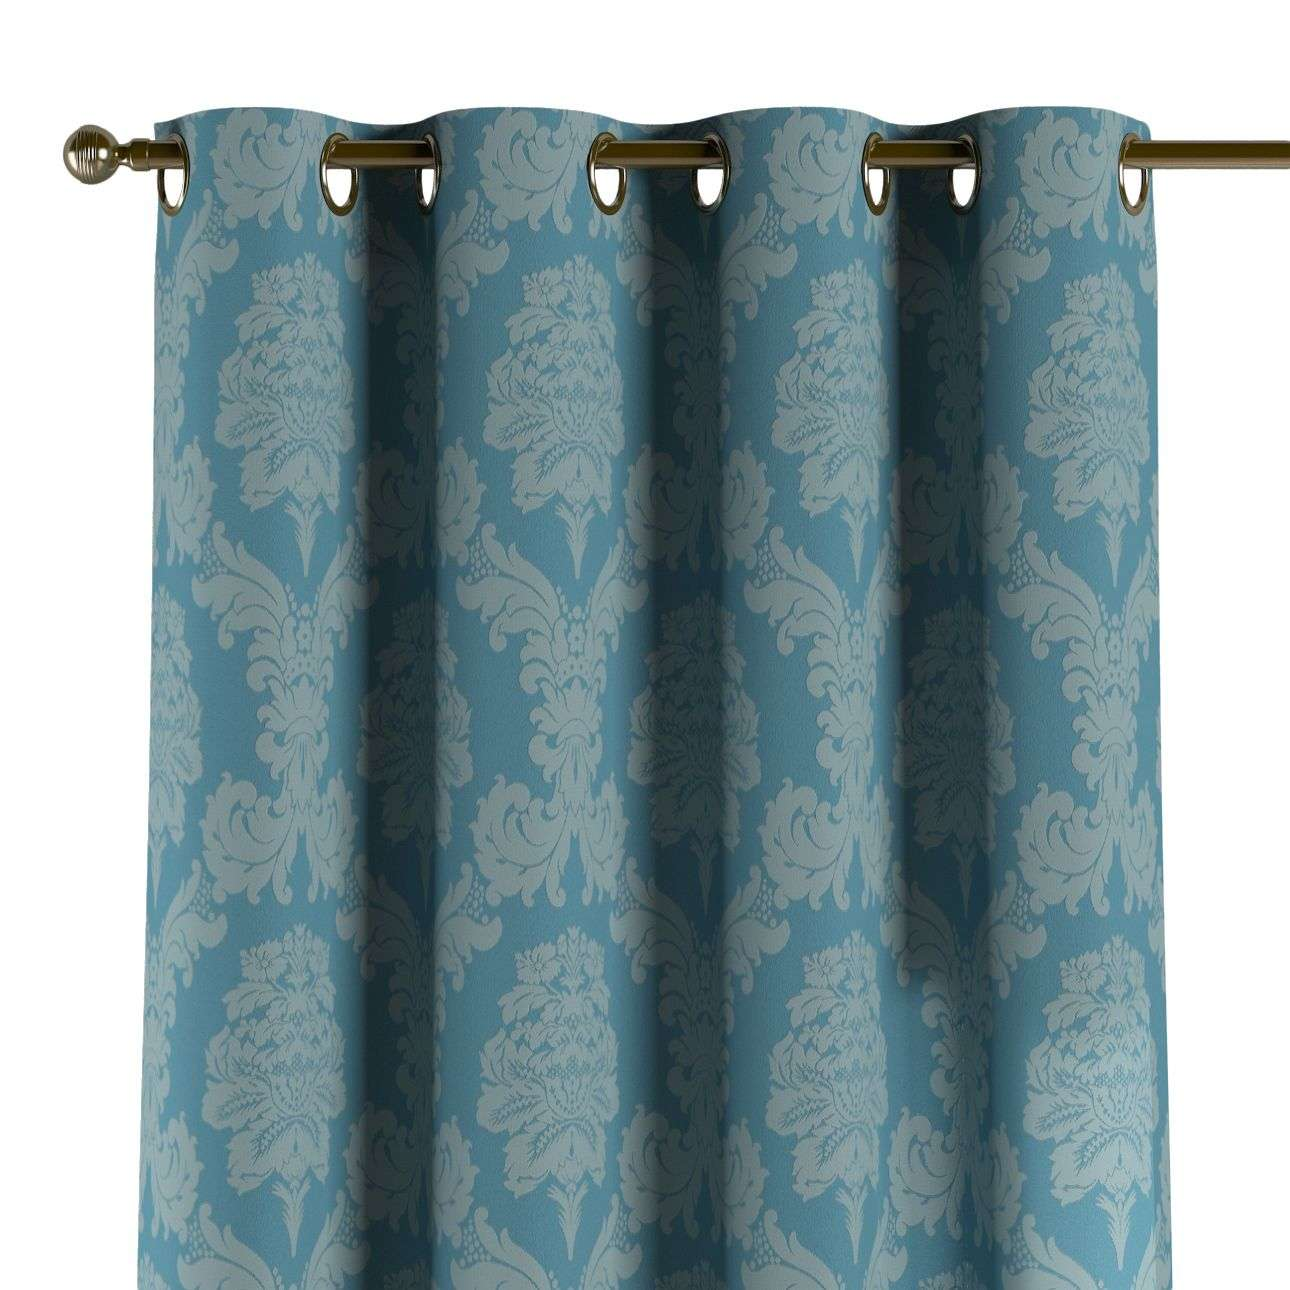 Eyelet curtains 130 x 260 cm (51 x 102 inch) in collection Damasco, fabric: 613-67